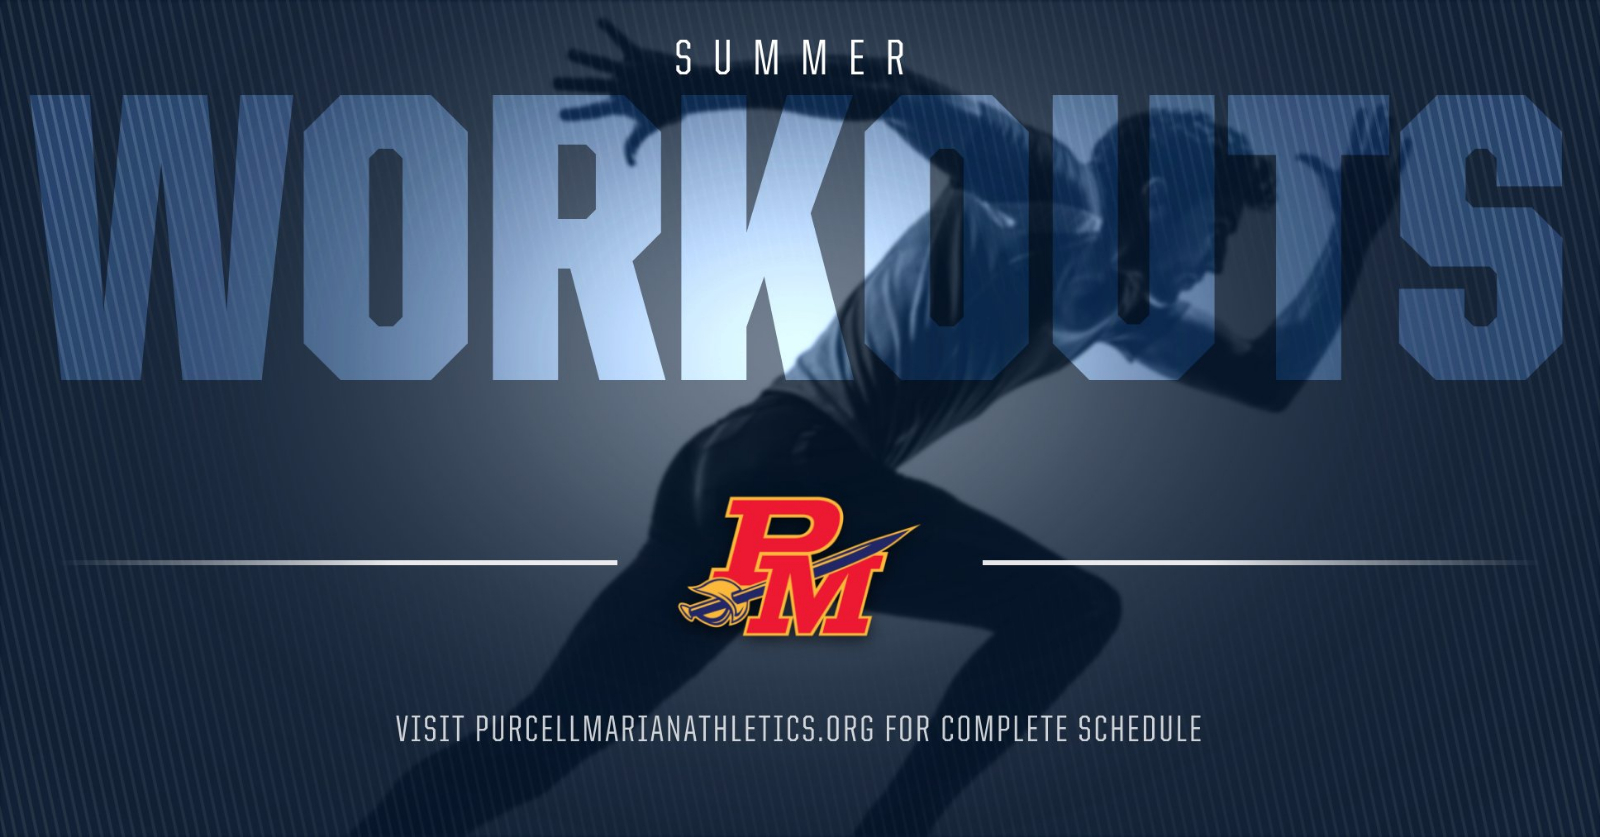 The Summer Workout Schedule Is Now Posted